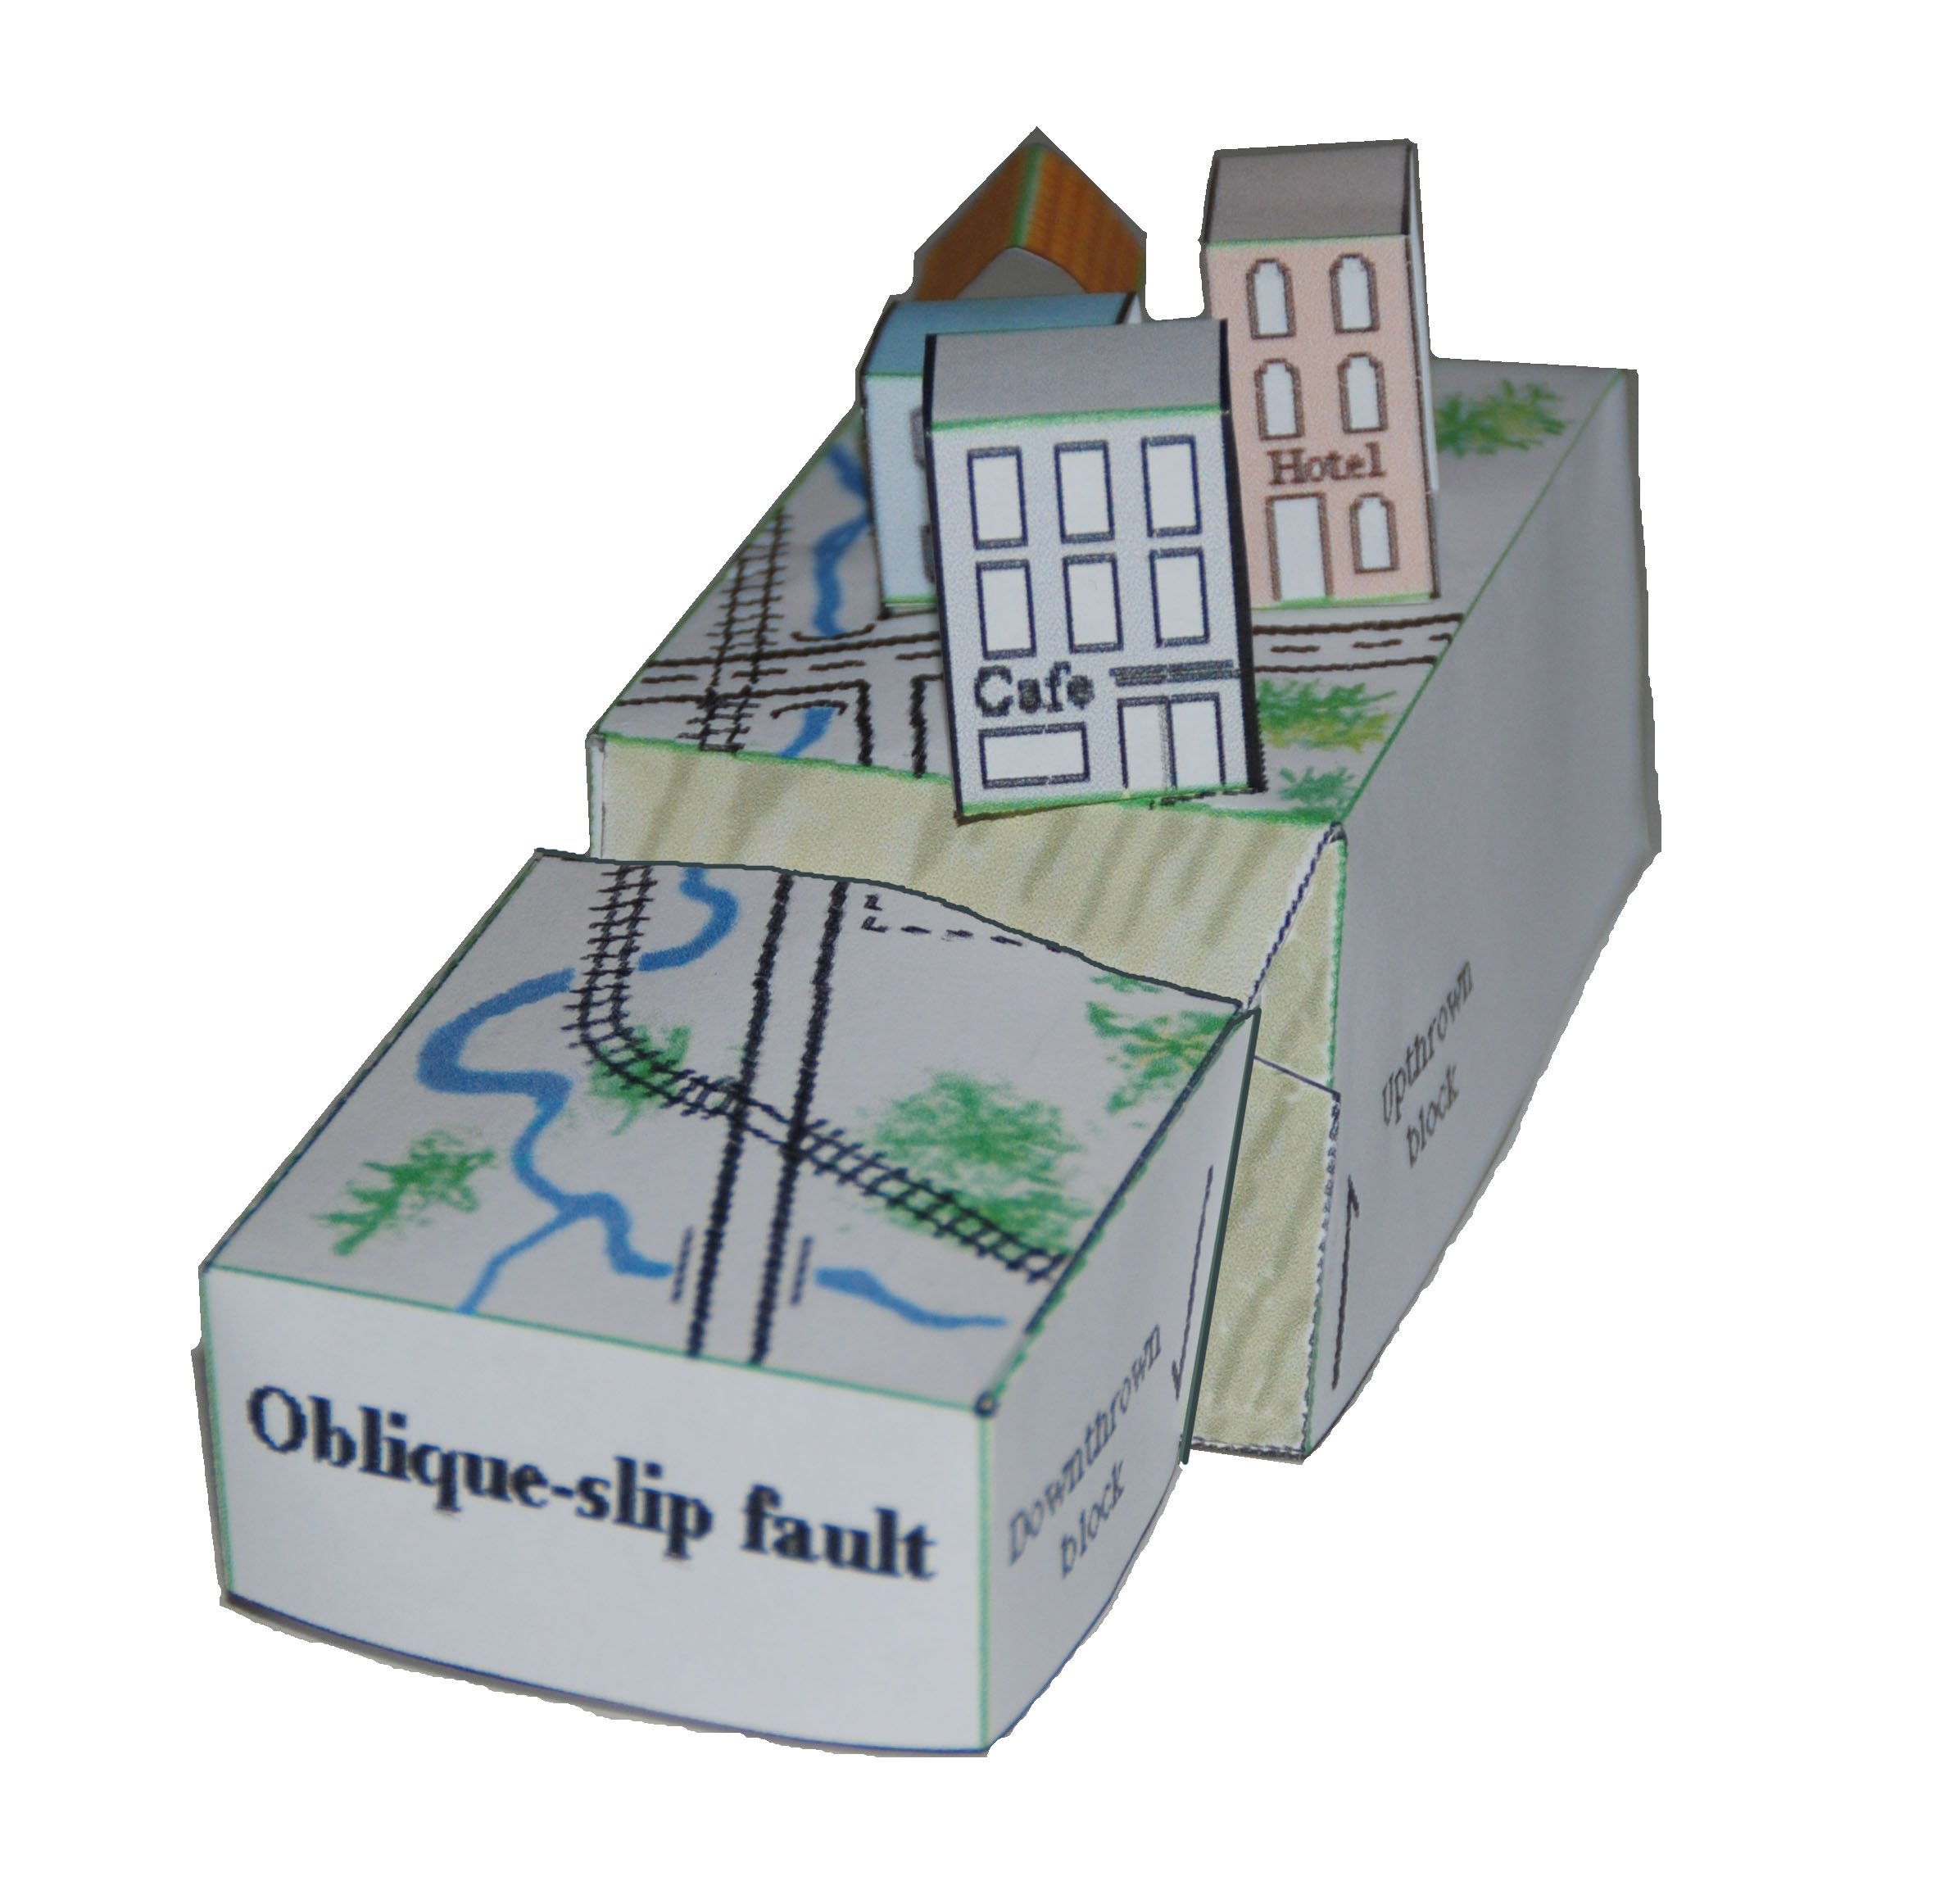 picture of oblique-slip fault model